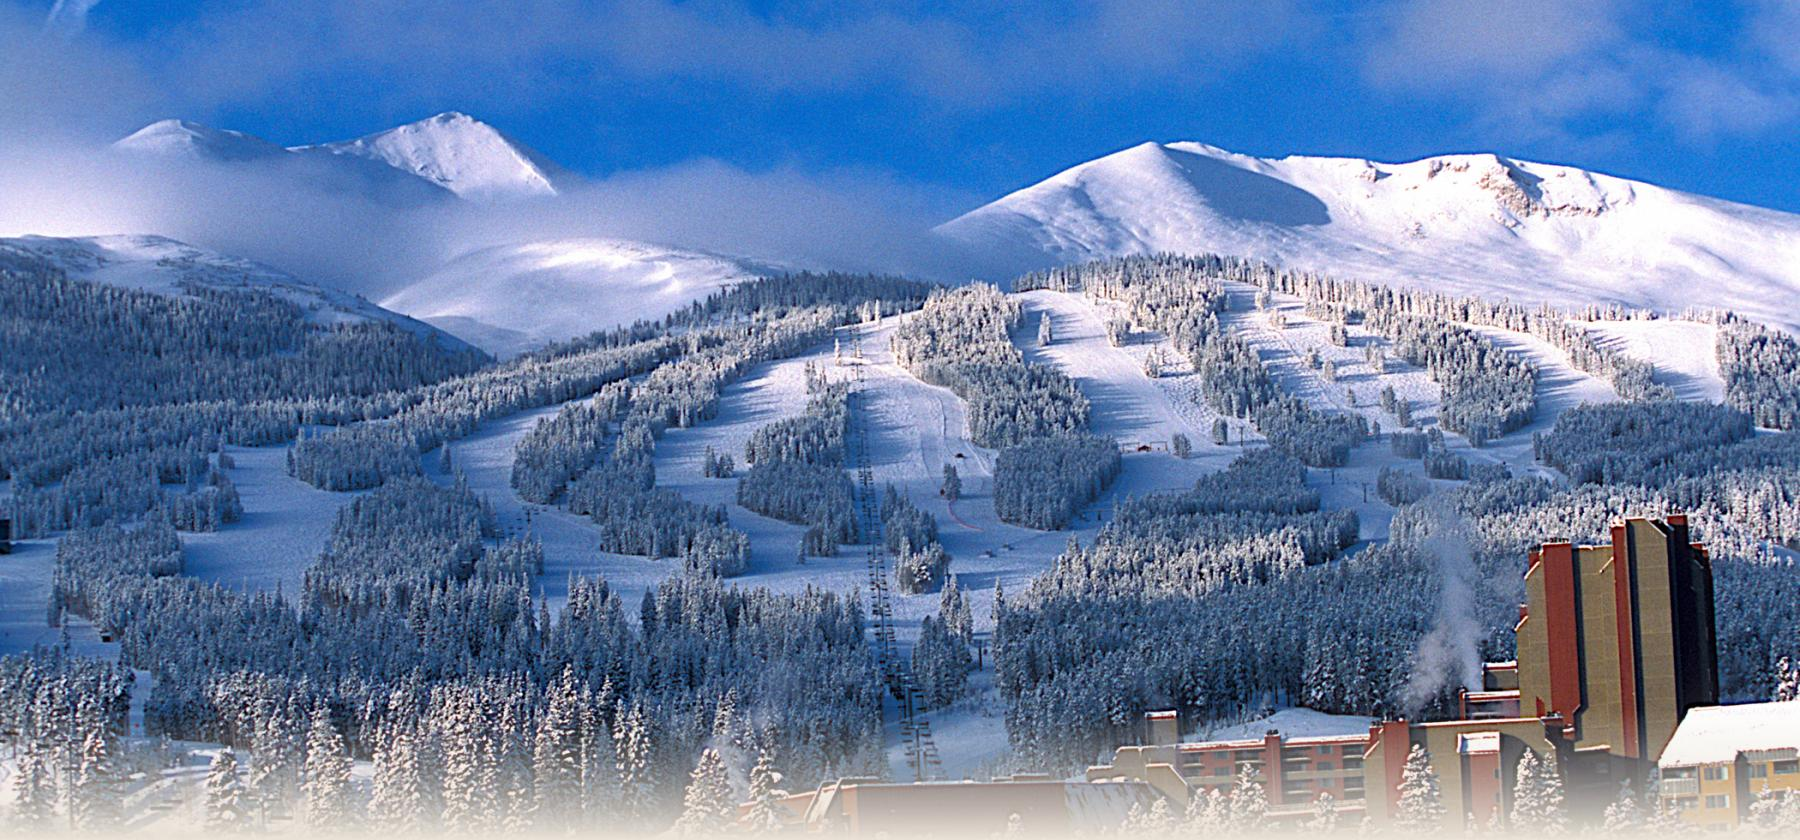 Beaver Run Resort and Ski Runs in Winter